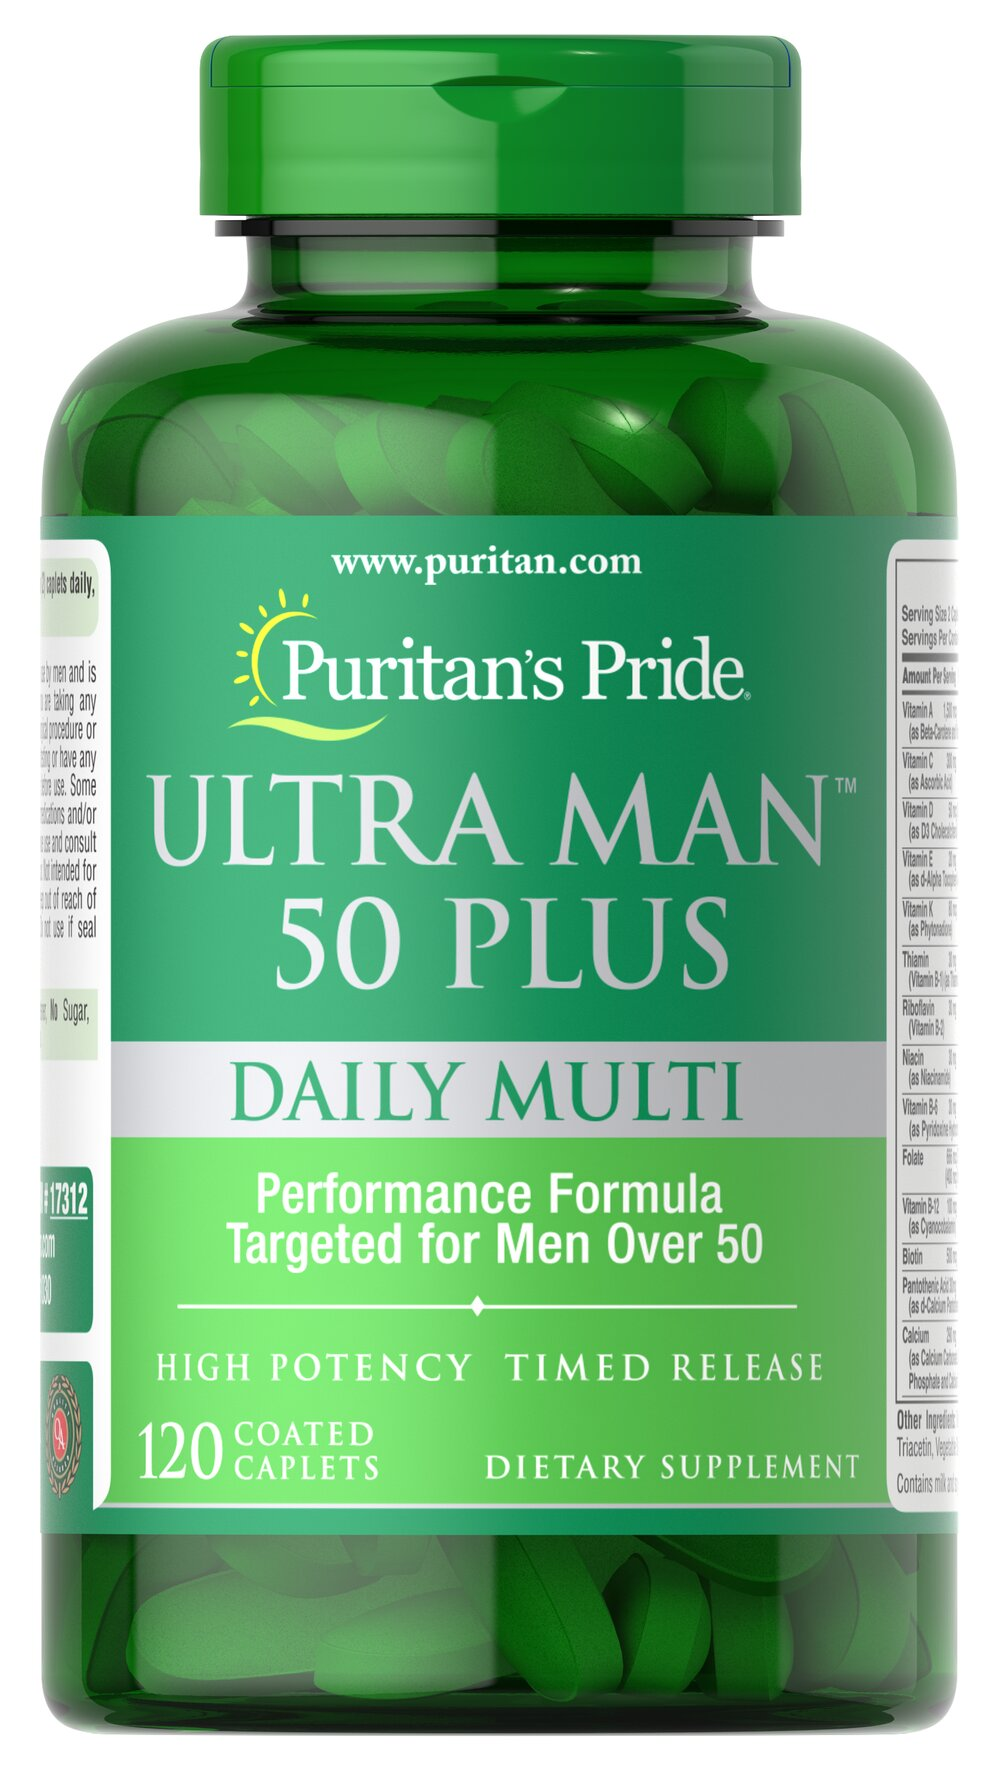 Ultra Vita Man™ 50 Plus • High performance multi with over 50 important nutrients for men's health**<br />• Created especially for men over 50<br />• Just two coated caplets a day<br />• Helps improve memory, especially occasional mild memory problems associated with aging**<br />• Features Zinc, an important mineral that contributes to normal semen production and sexual health** 120 Caplets  $34.99